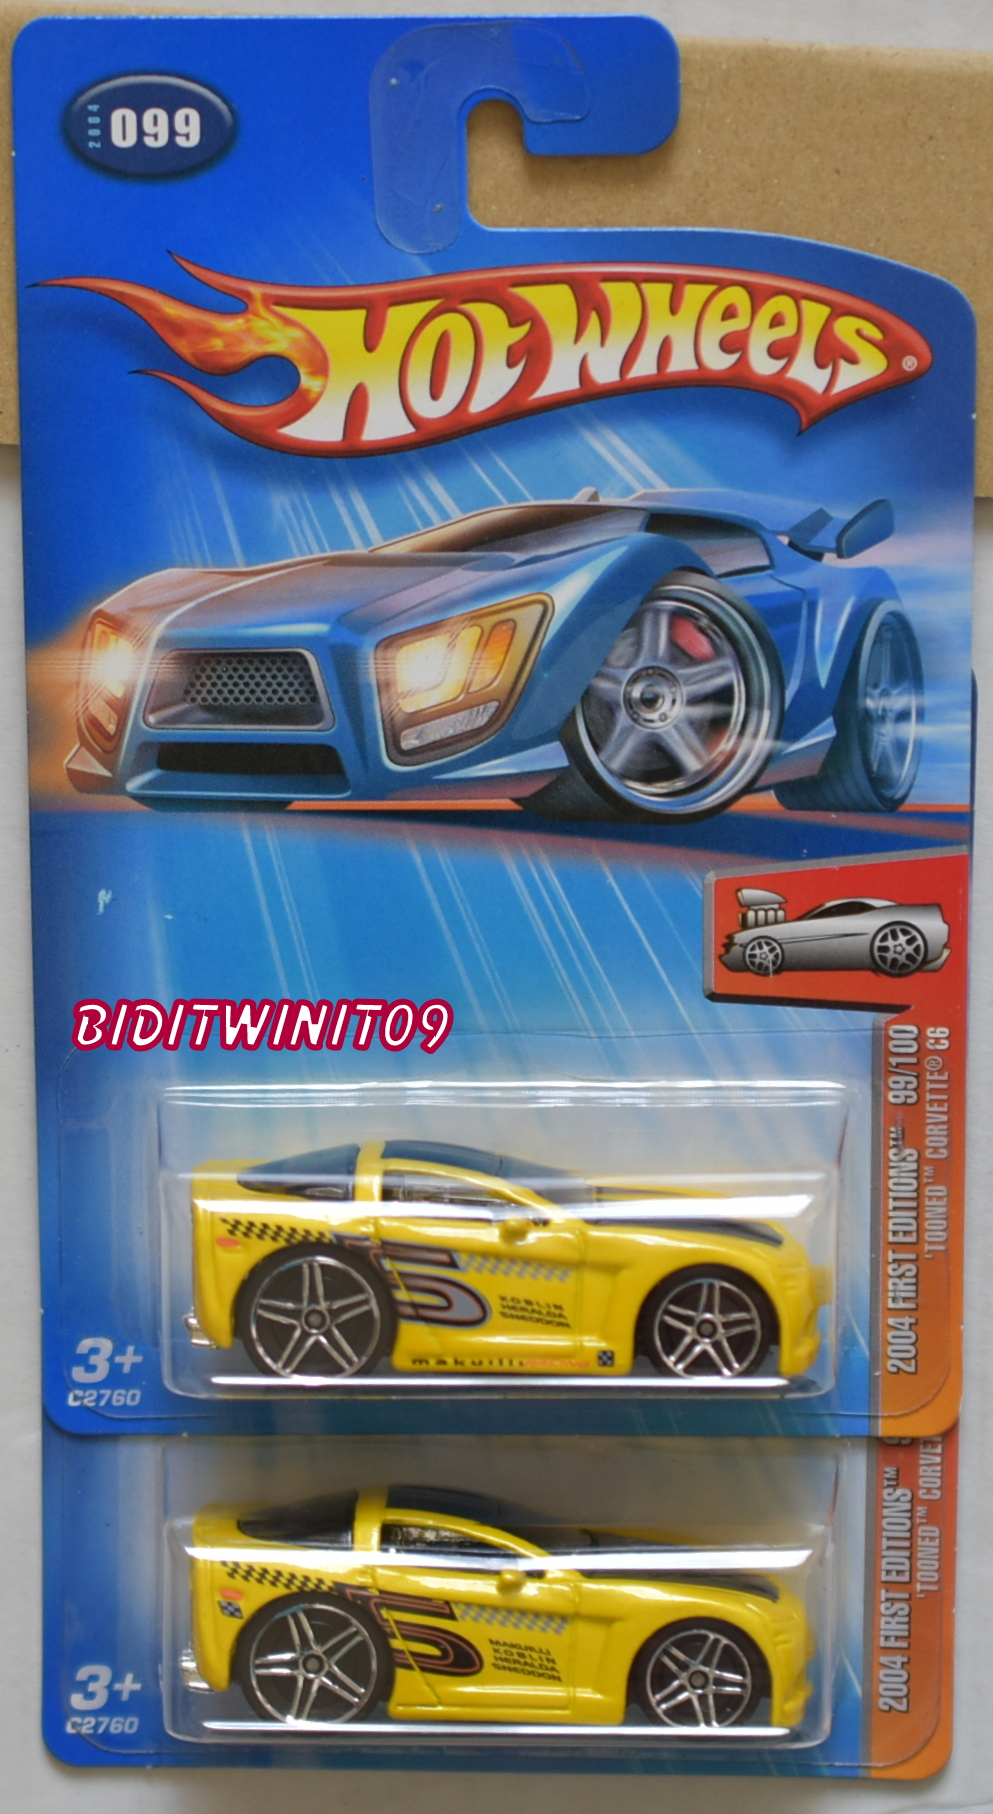 HOT WHEELS 2004 FIRST EDITIONS TOONED CORVETTE C6 #099 TAMPO VARIATION E+